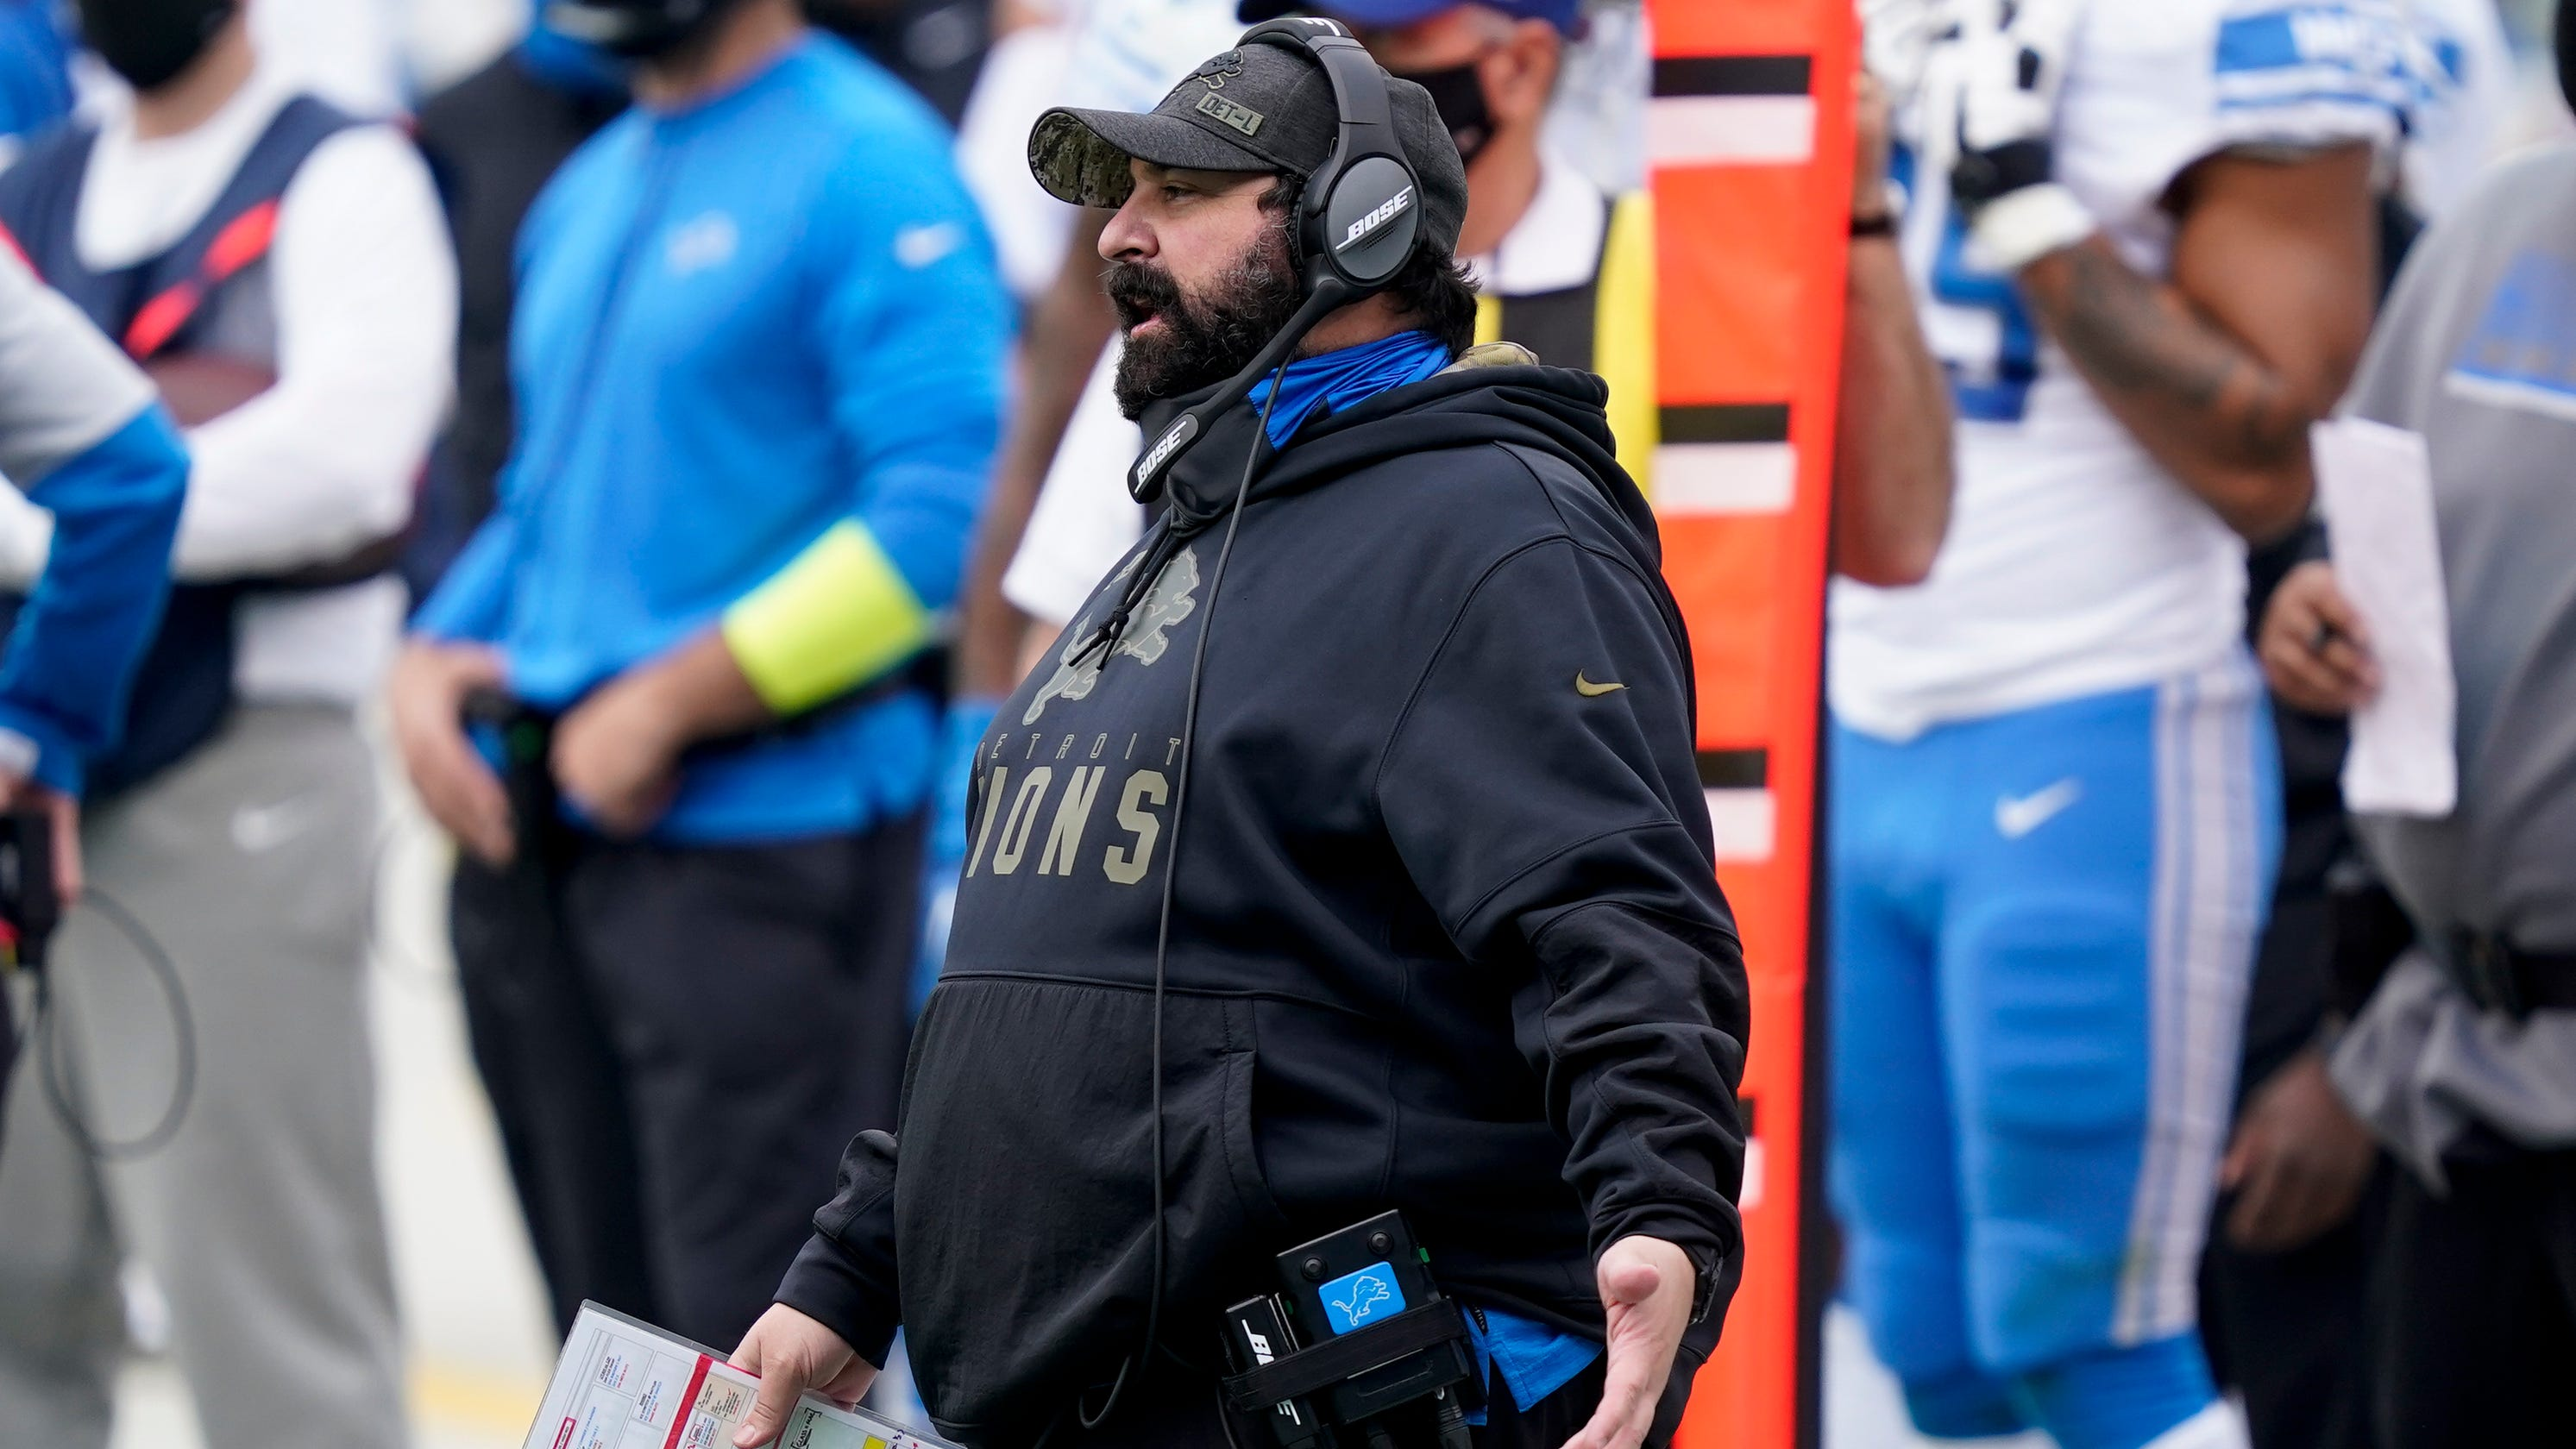 After numbing 20-0 loss, Matt Patricia's days with Detroit Lions are numbered - Detroit Free Press